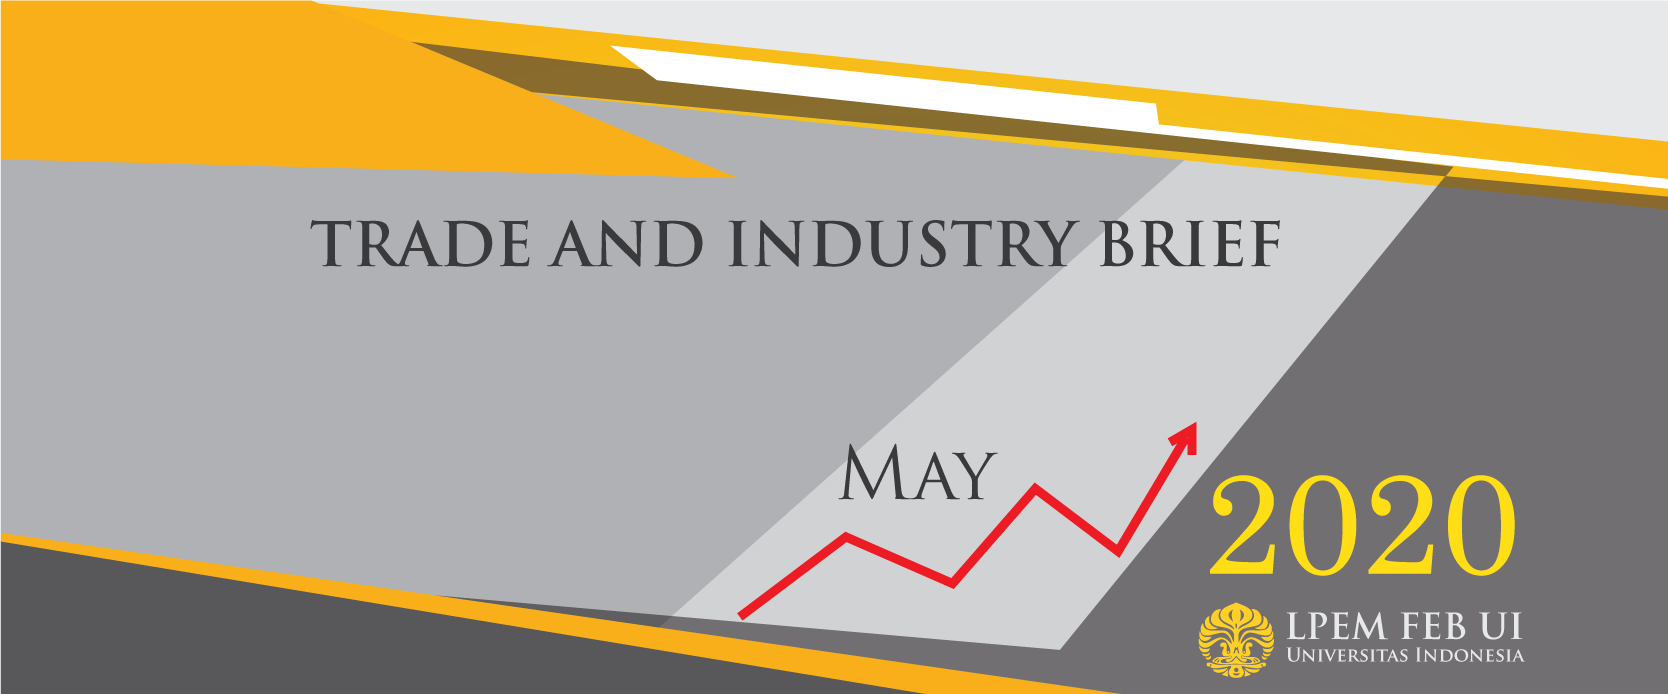 SERI ANALISIS EKONOMI: TRADE AND INDUSTRY BRIEF, Mei 2020